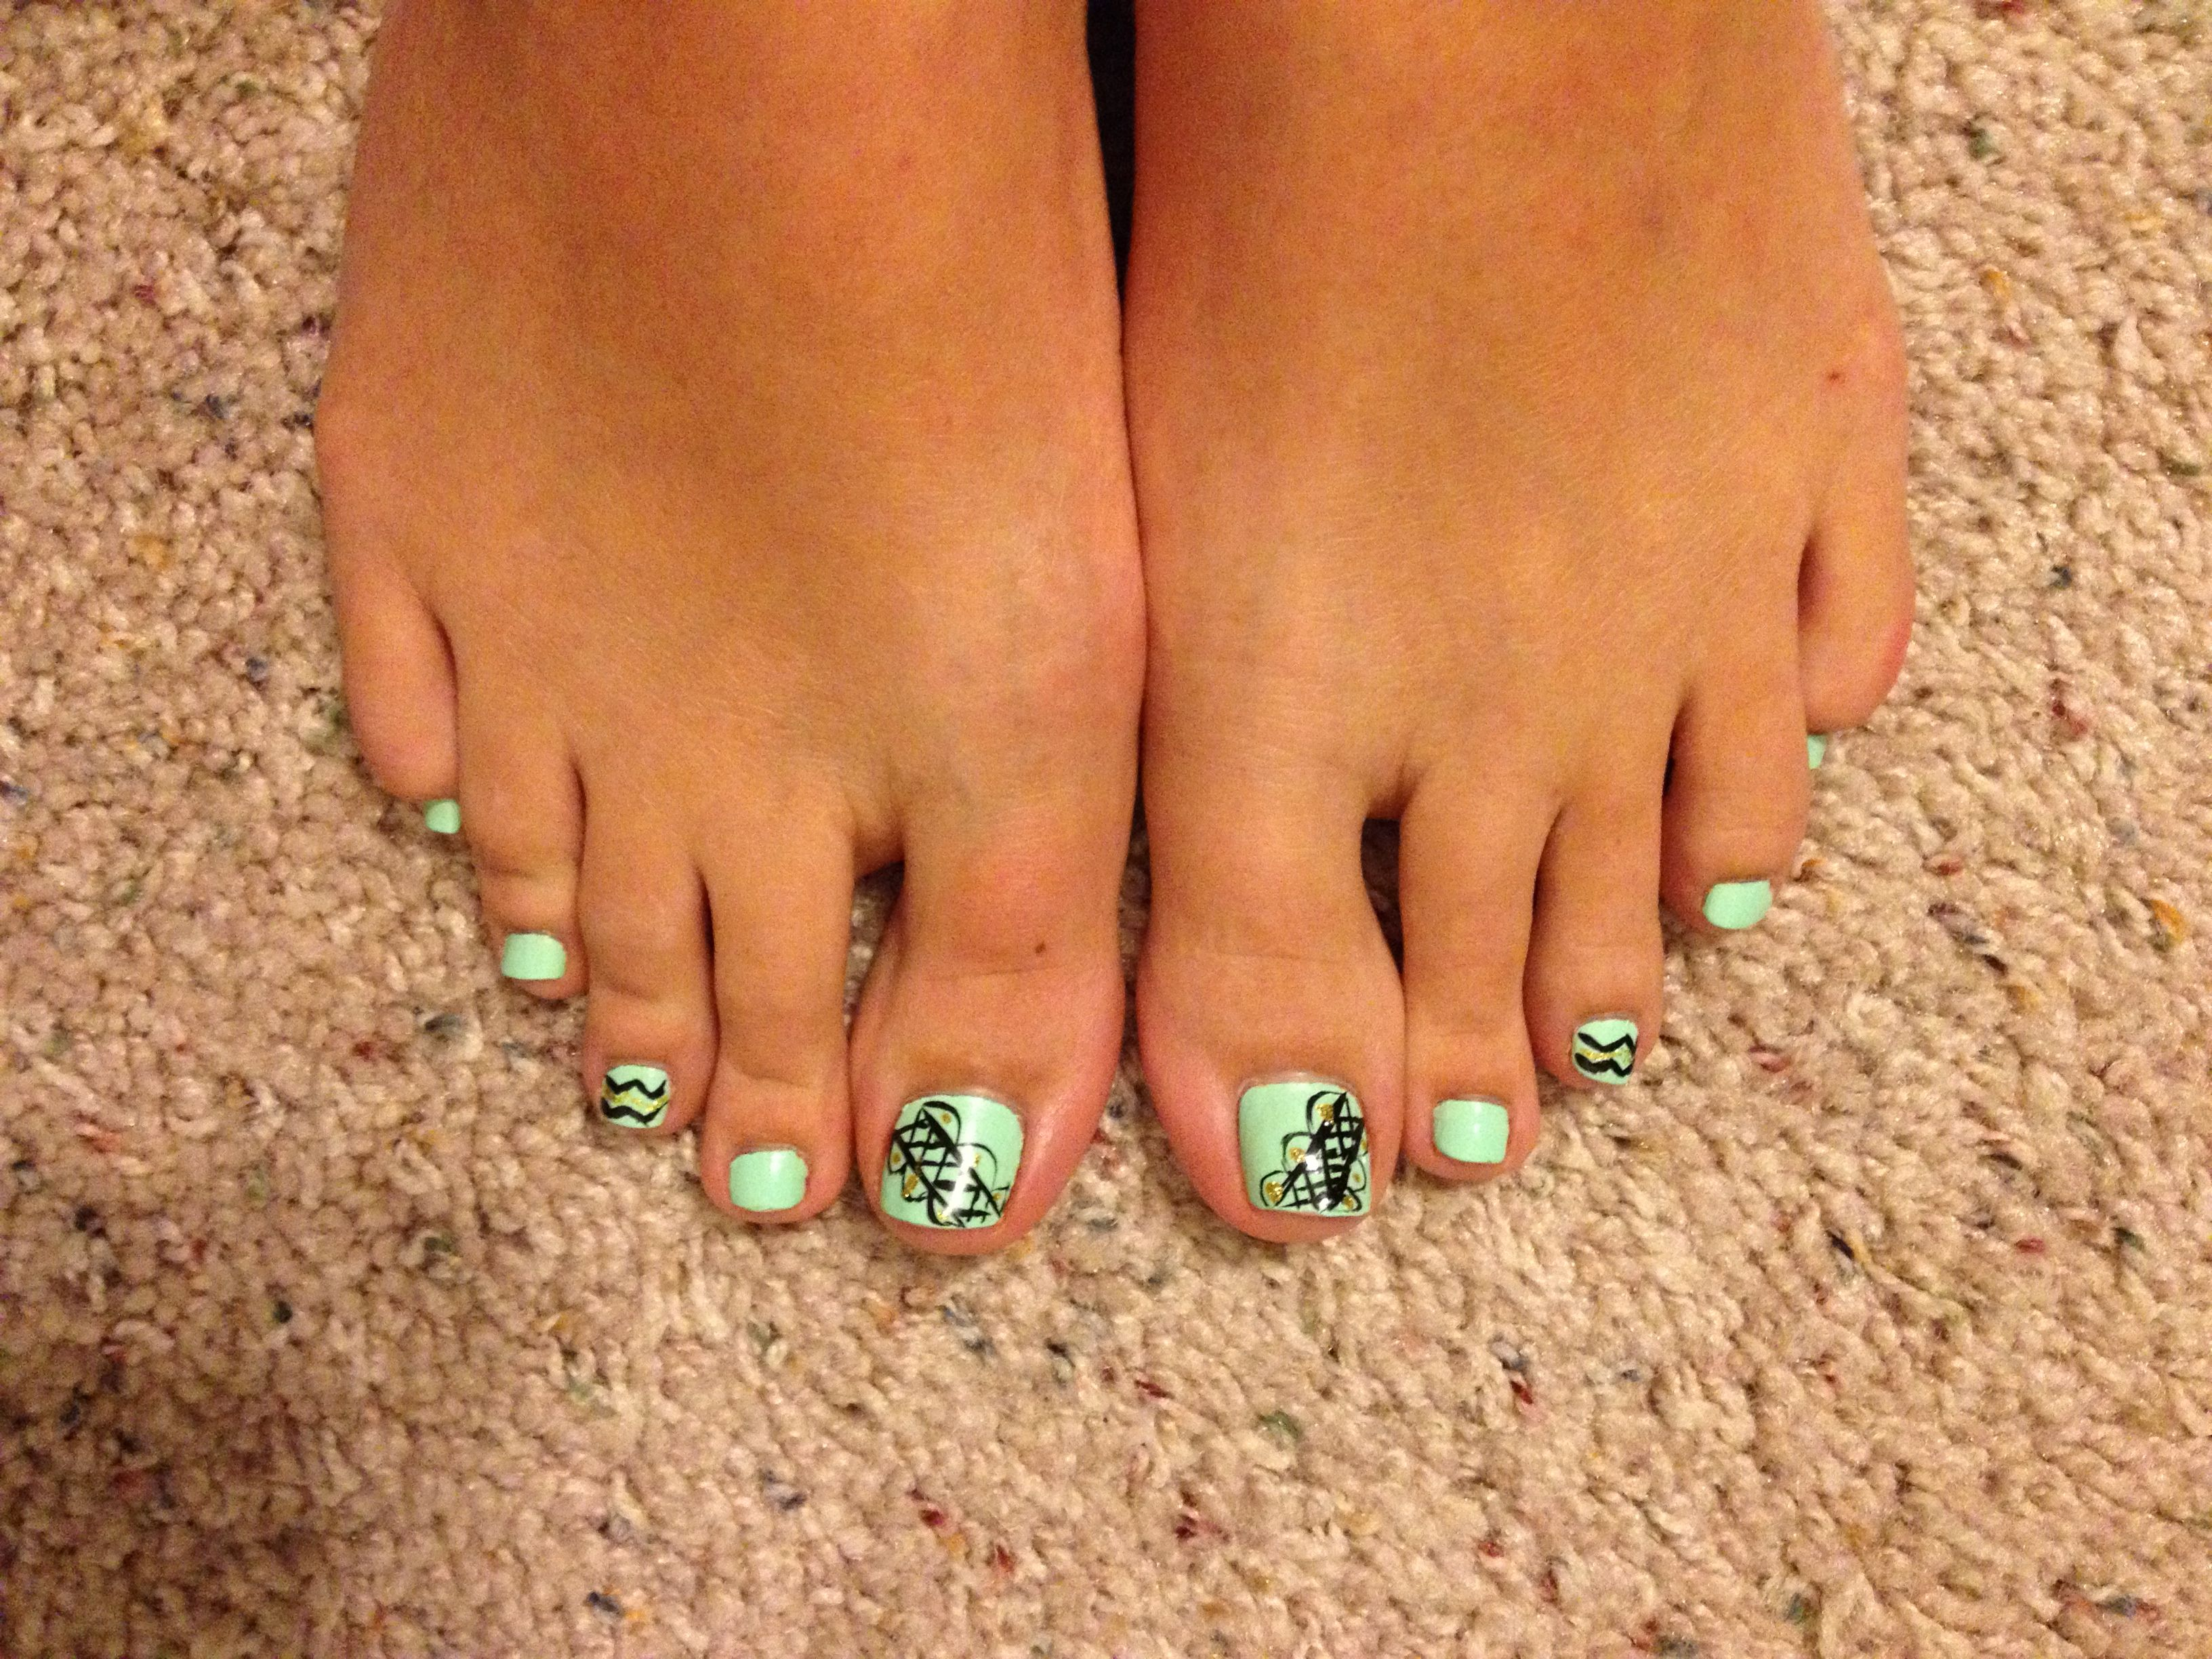 Mint green toe nail polish with designs #toenails#mint#green#polish ...